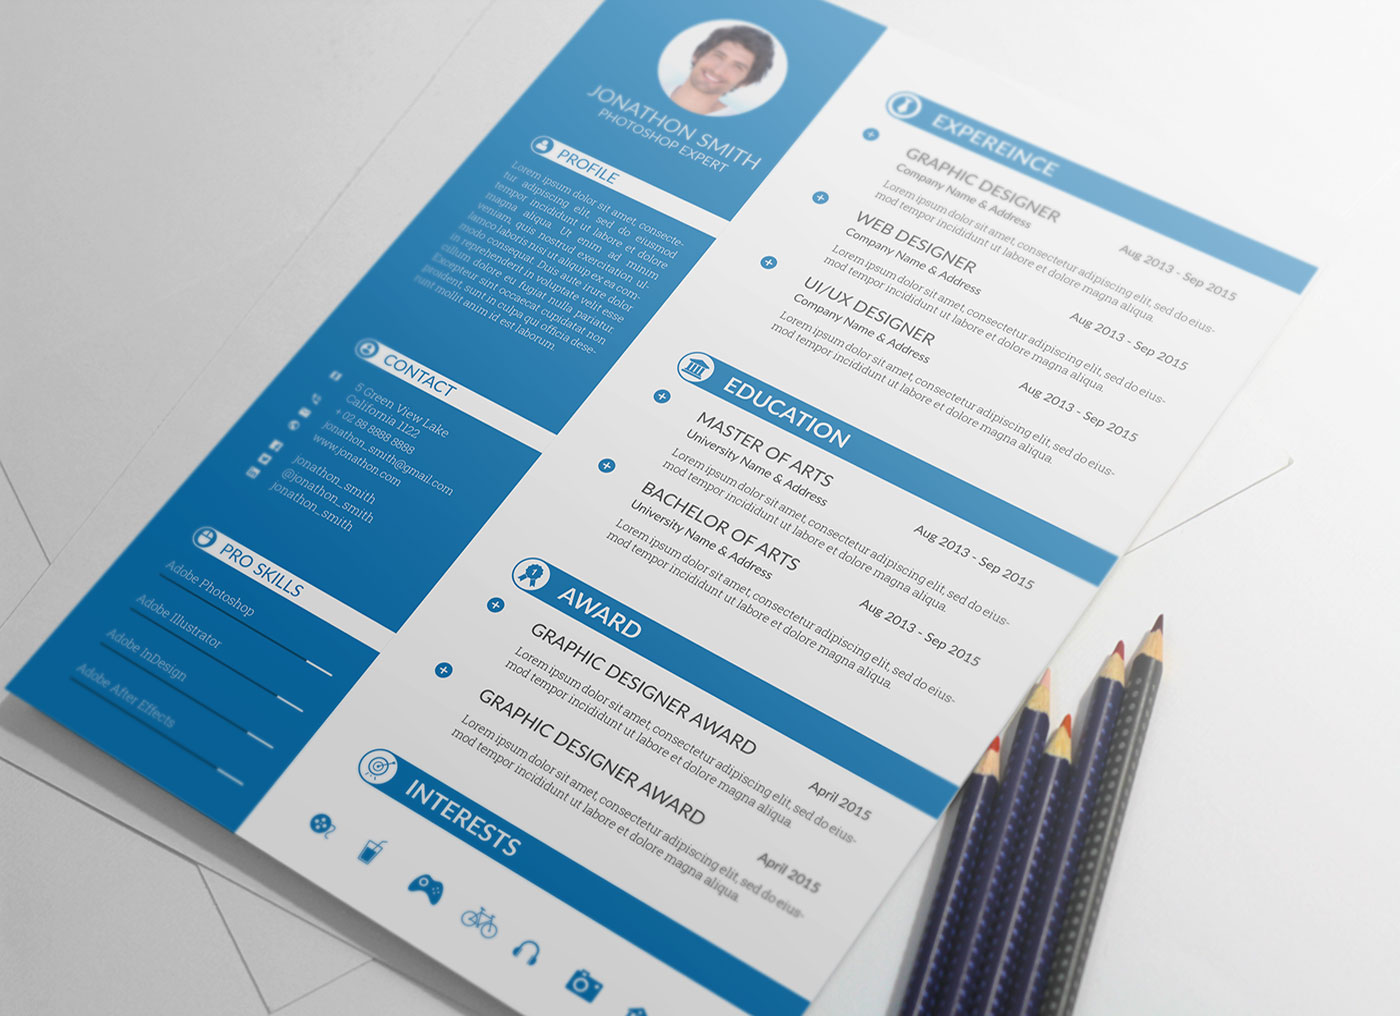 Free-PSD-Resume-CV-&-Cover-Letter-Template-for-UI-and-UX-Designer (5)